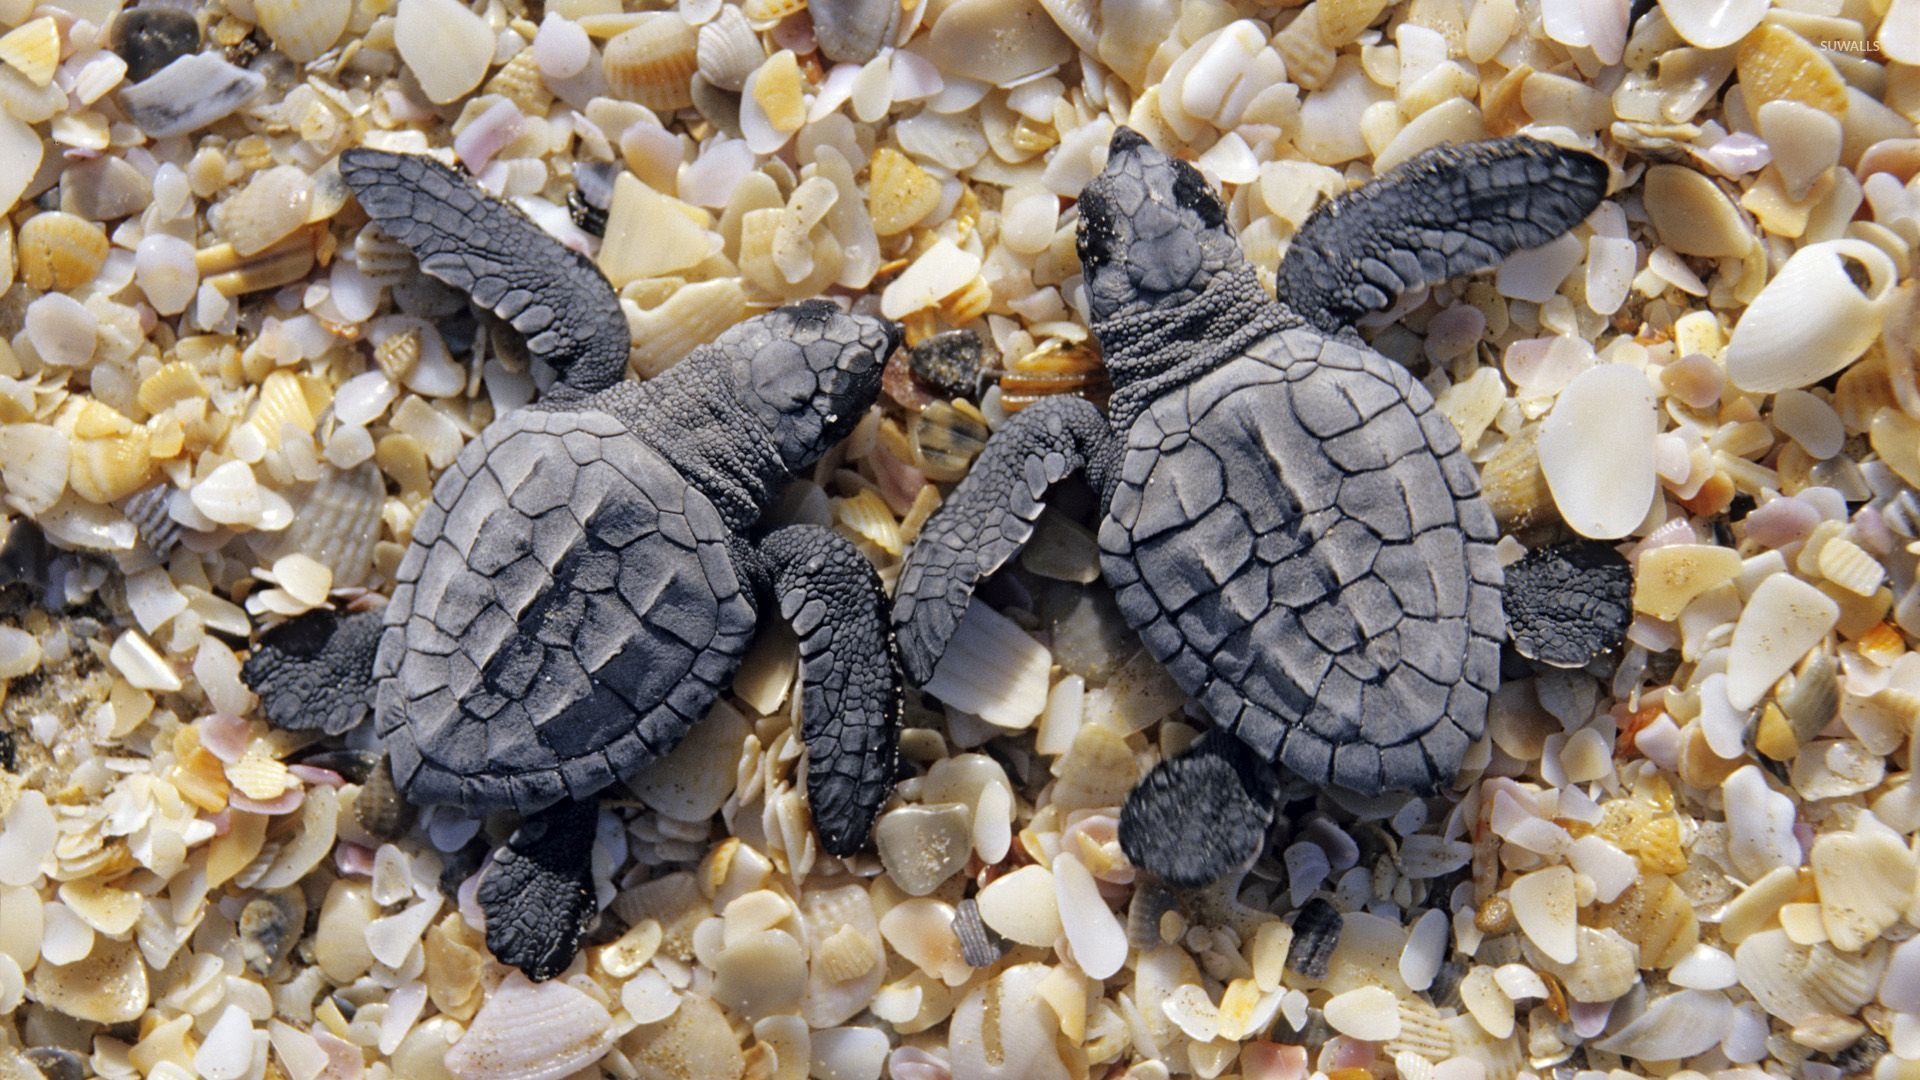 Sea Turtles Wallpaper Sea Turtles On Shells And Pebbles Wallpaper Animal Wallpapers